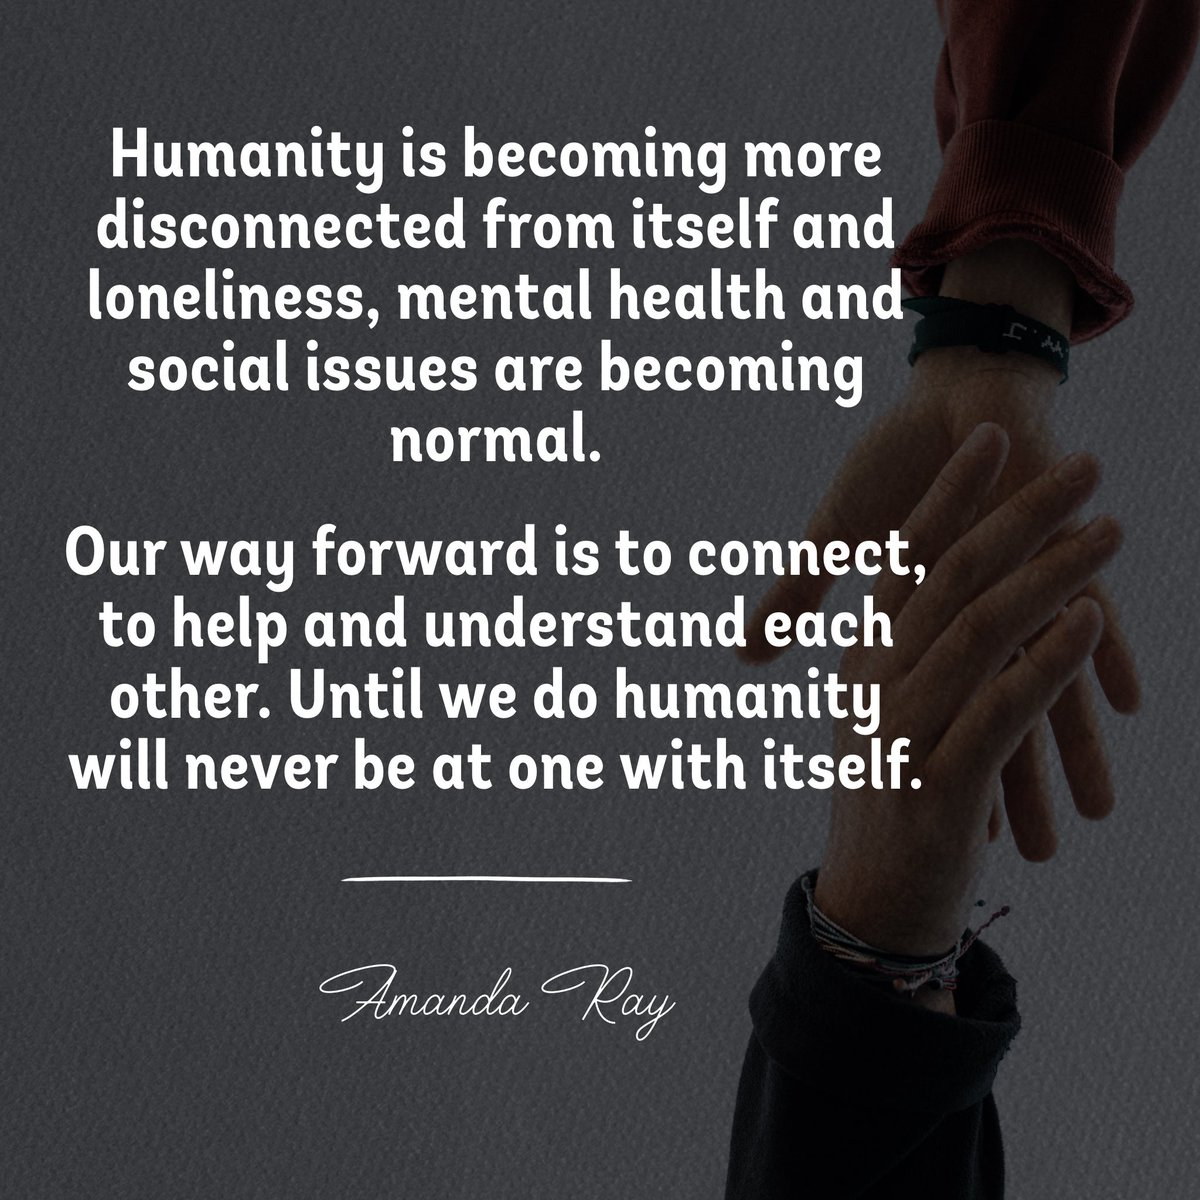 ..... Our way forward is to connect, to help and understand each other. Until we do humanity will never be at one with itself. #amandaray #Mentalhealth #social #HumanityFirst @Mandy_Sanghera1 @AnnaMamalaki @digitalcloudgal @SDGS4GOOD @Victoryabro @ShiCooks @lsmurthy99